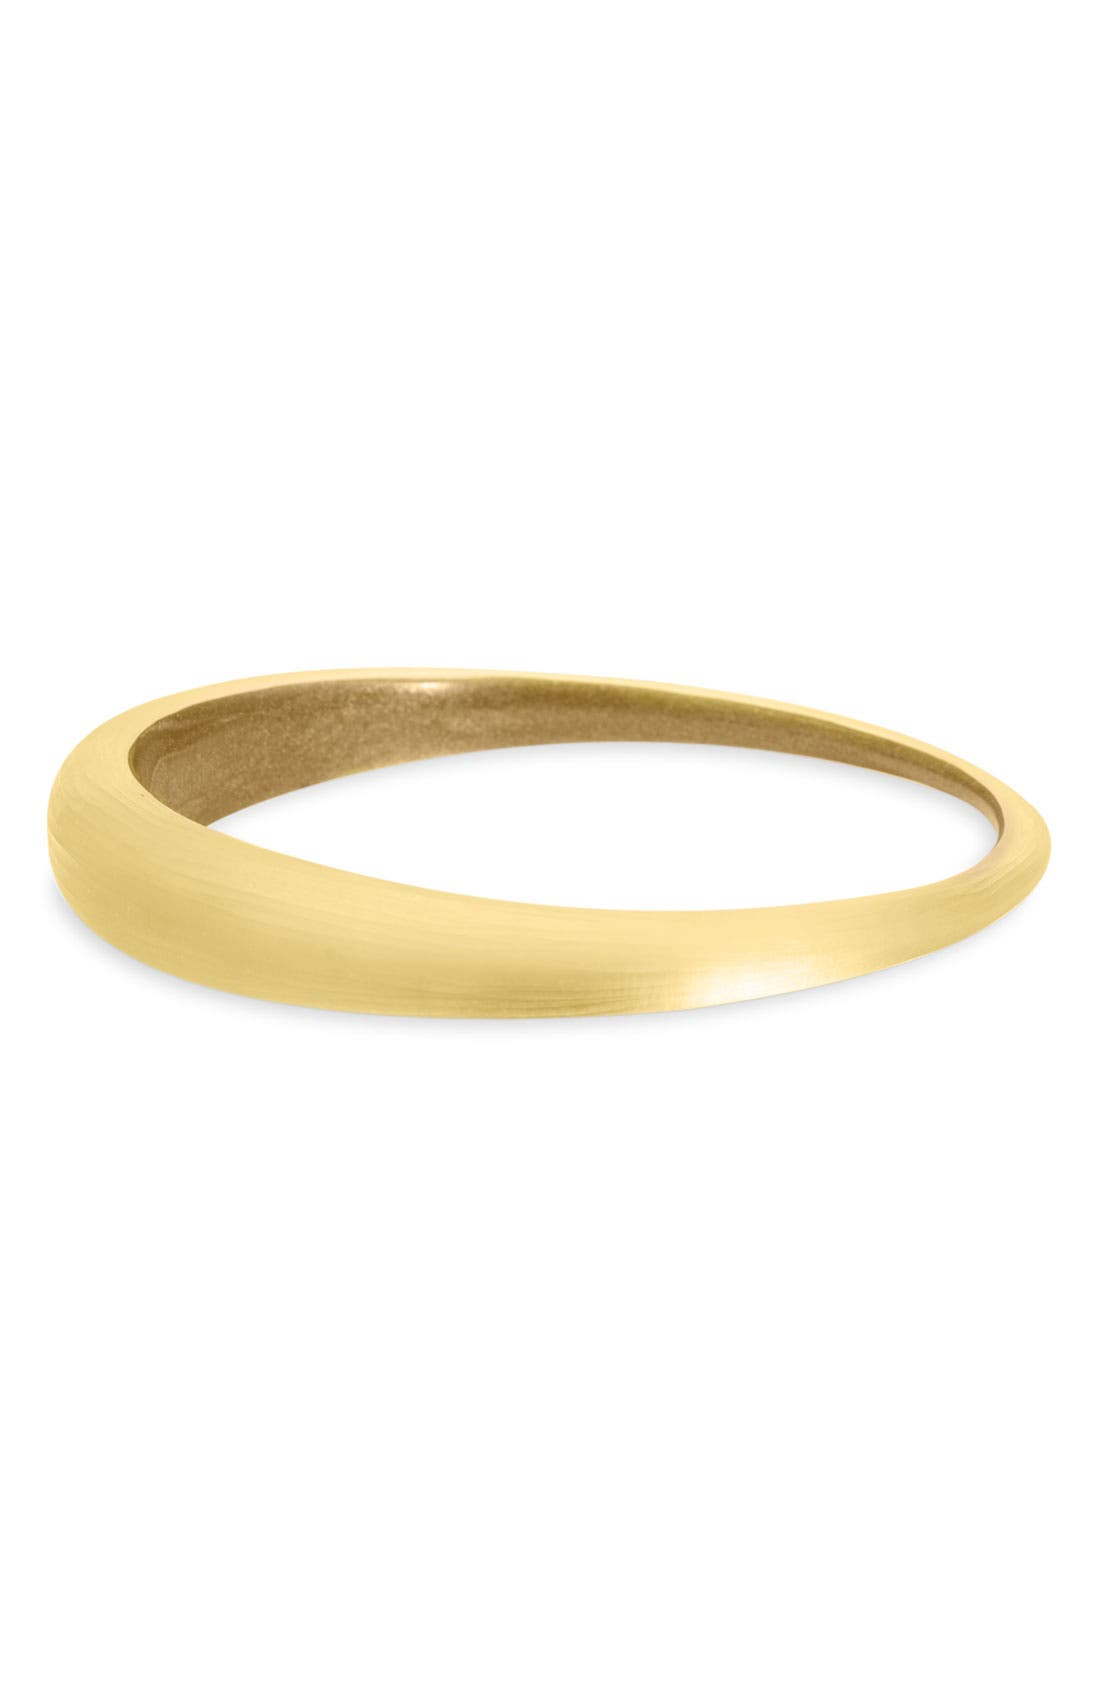 Main Image - Alexis Bittar 'Lucite®' Skinny Tapered Bangle